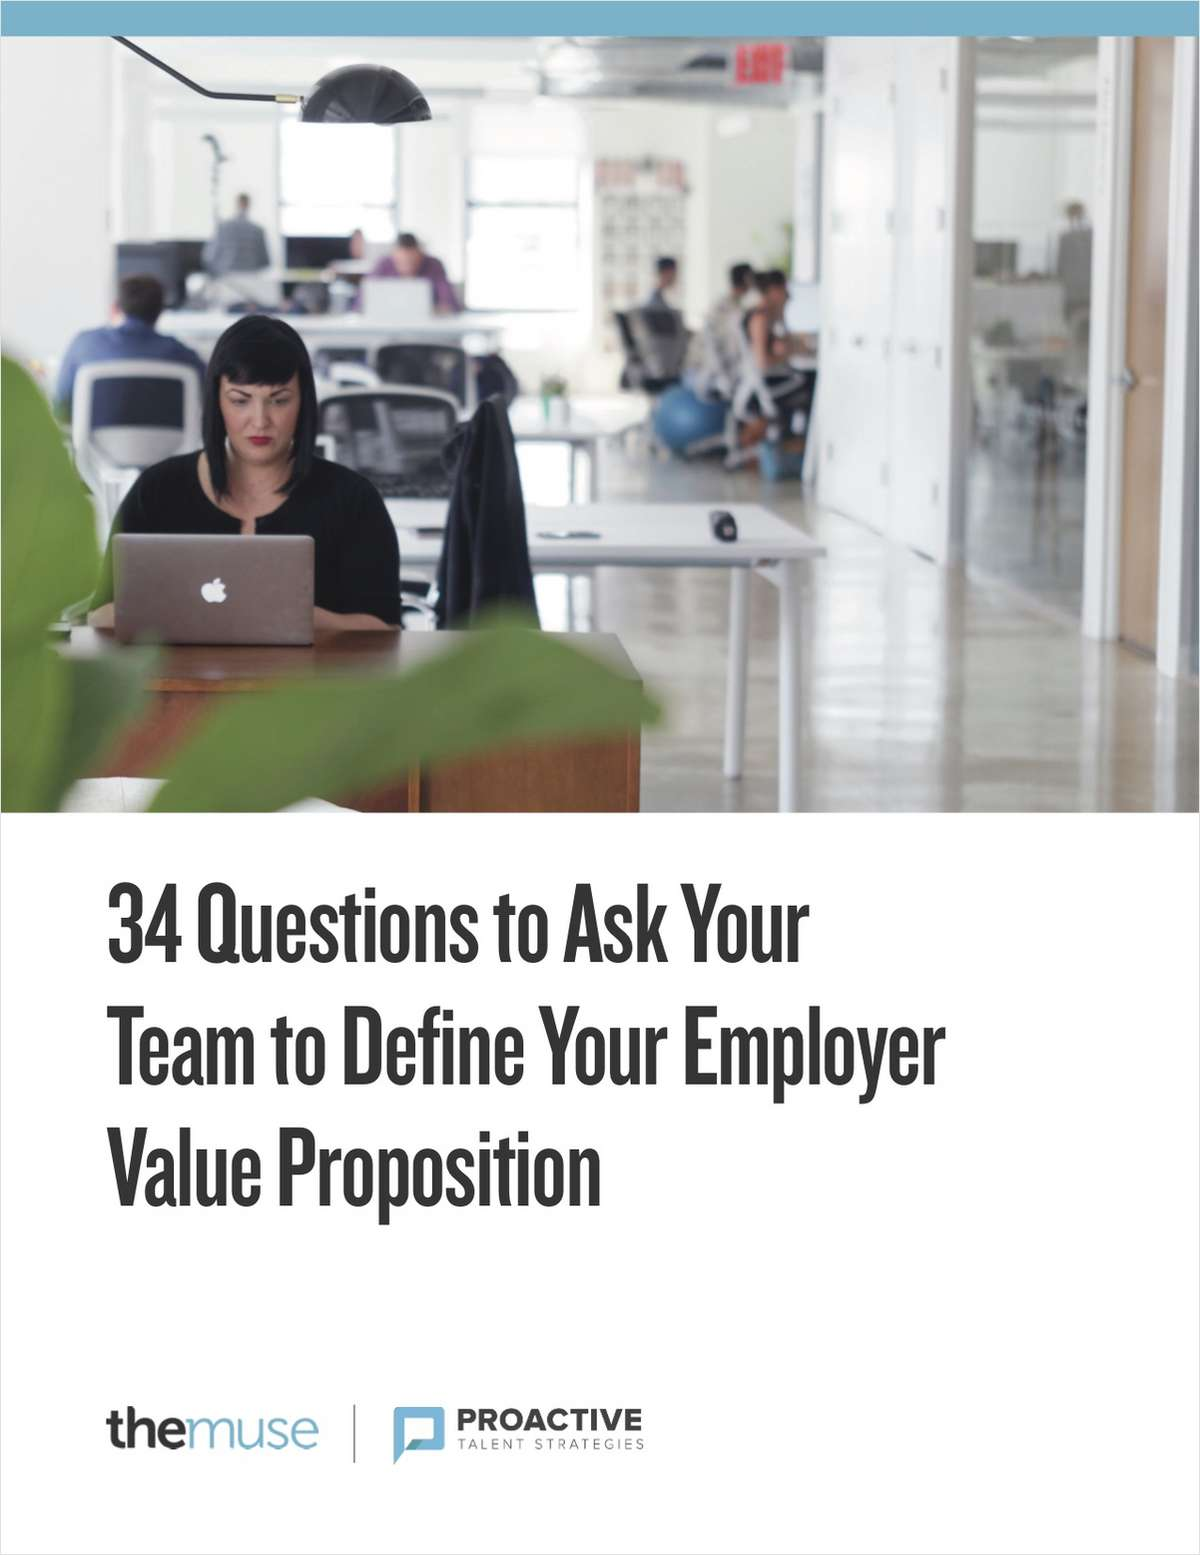 34 Questions to Ask Your Team to Define Your Employer Value Proposition